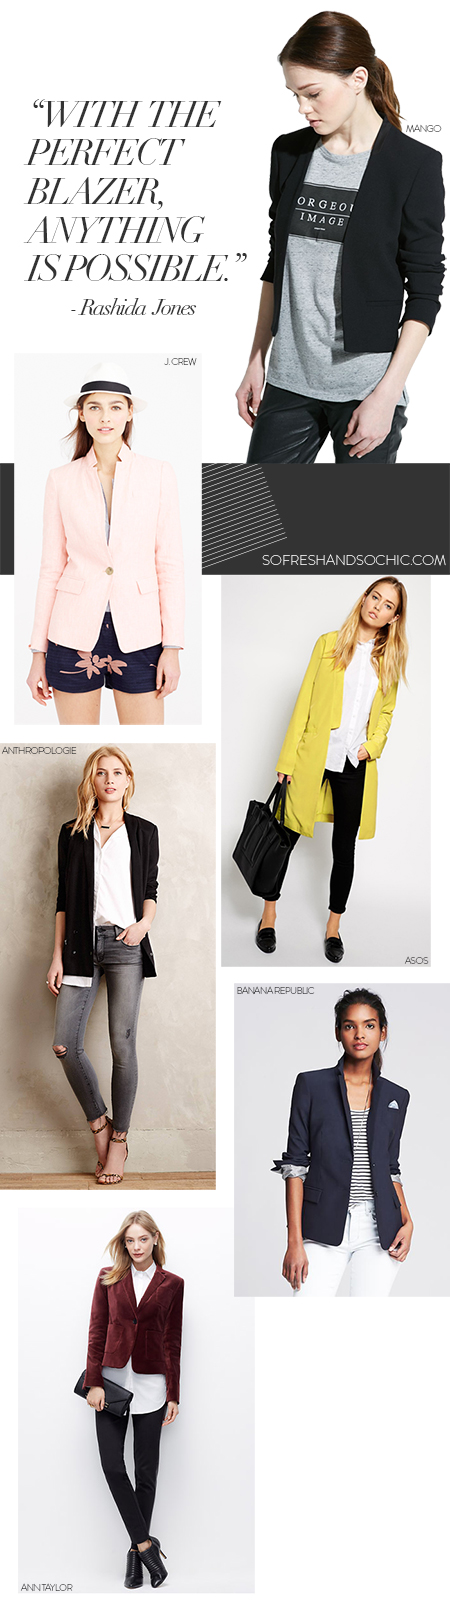 So Fresh & So Chic // Wardrobe Picks: The Blazer. See & shop my Top Picks for this super versatile piece! How many blazers do you own? #sofreshandsochic #womensfashion #mystyle